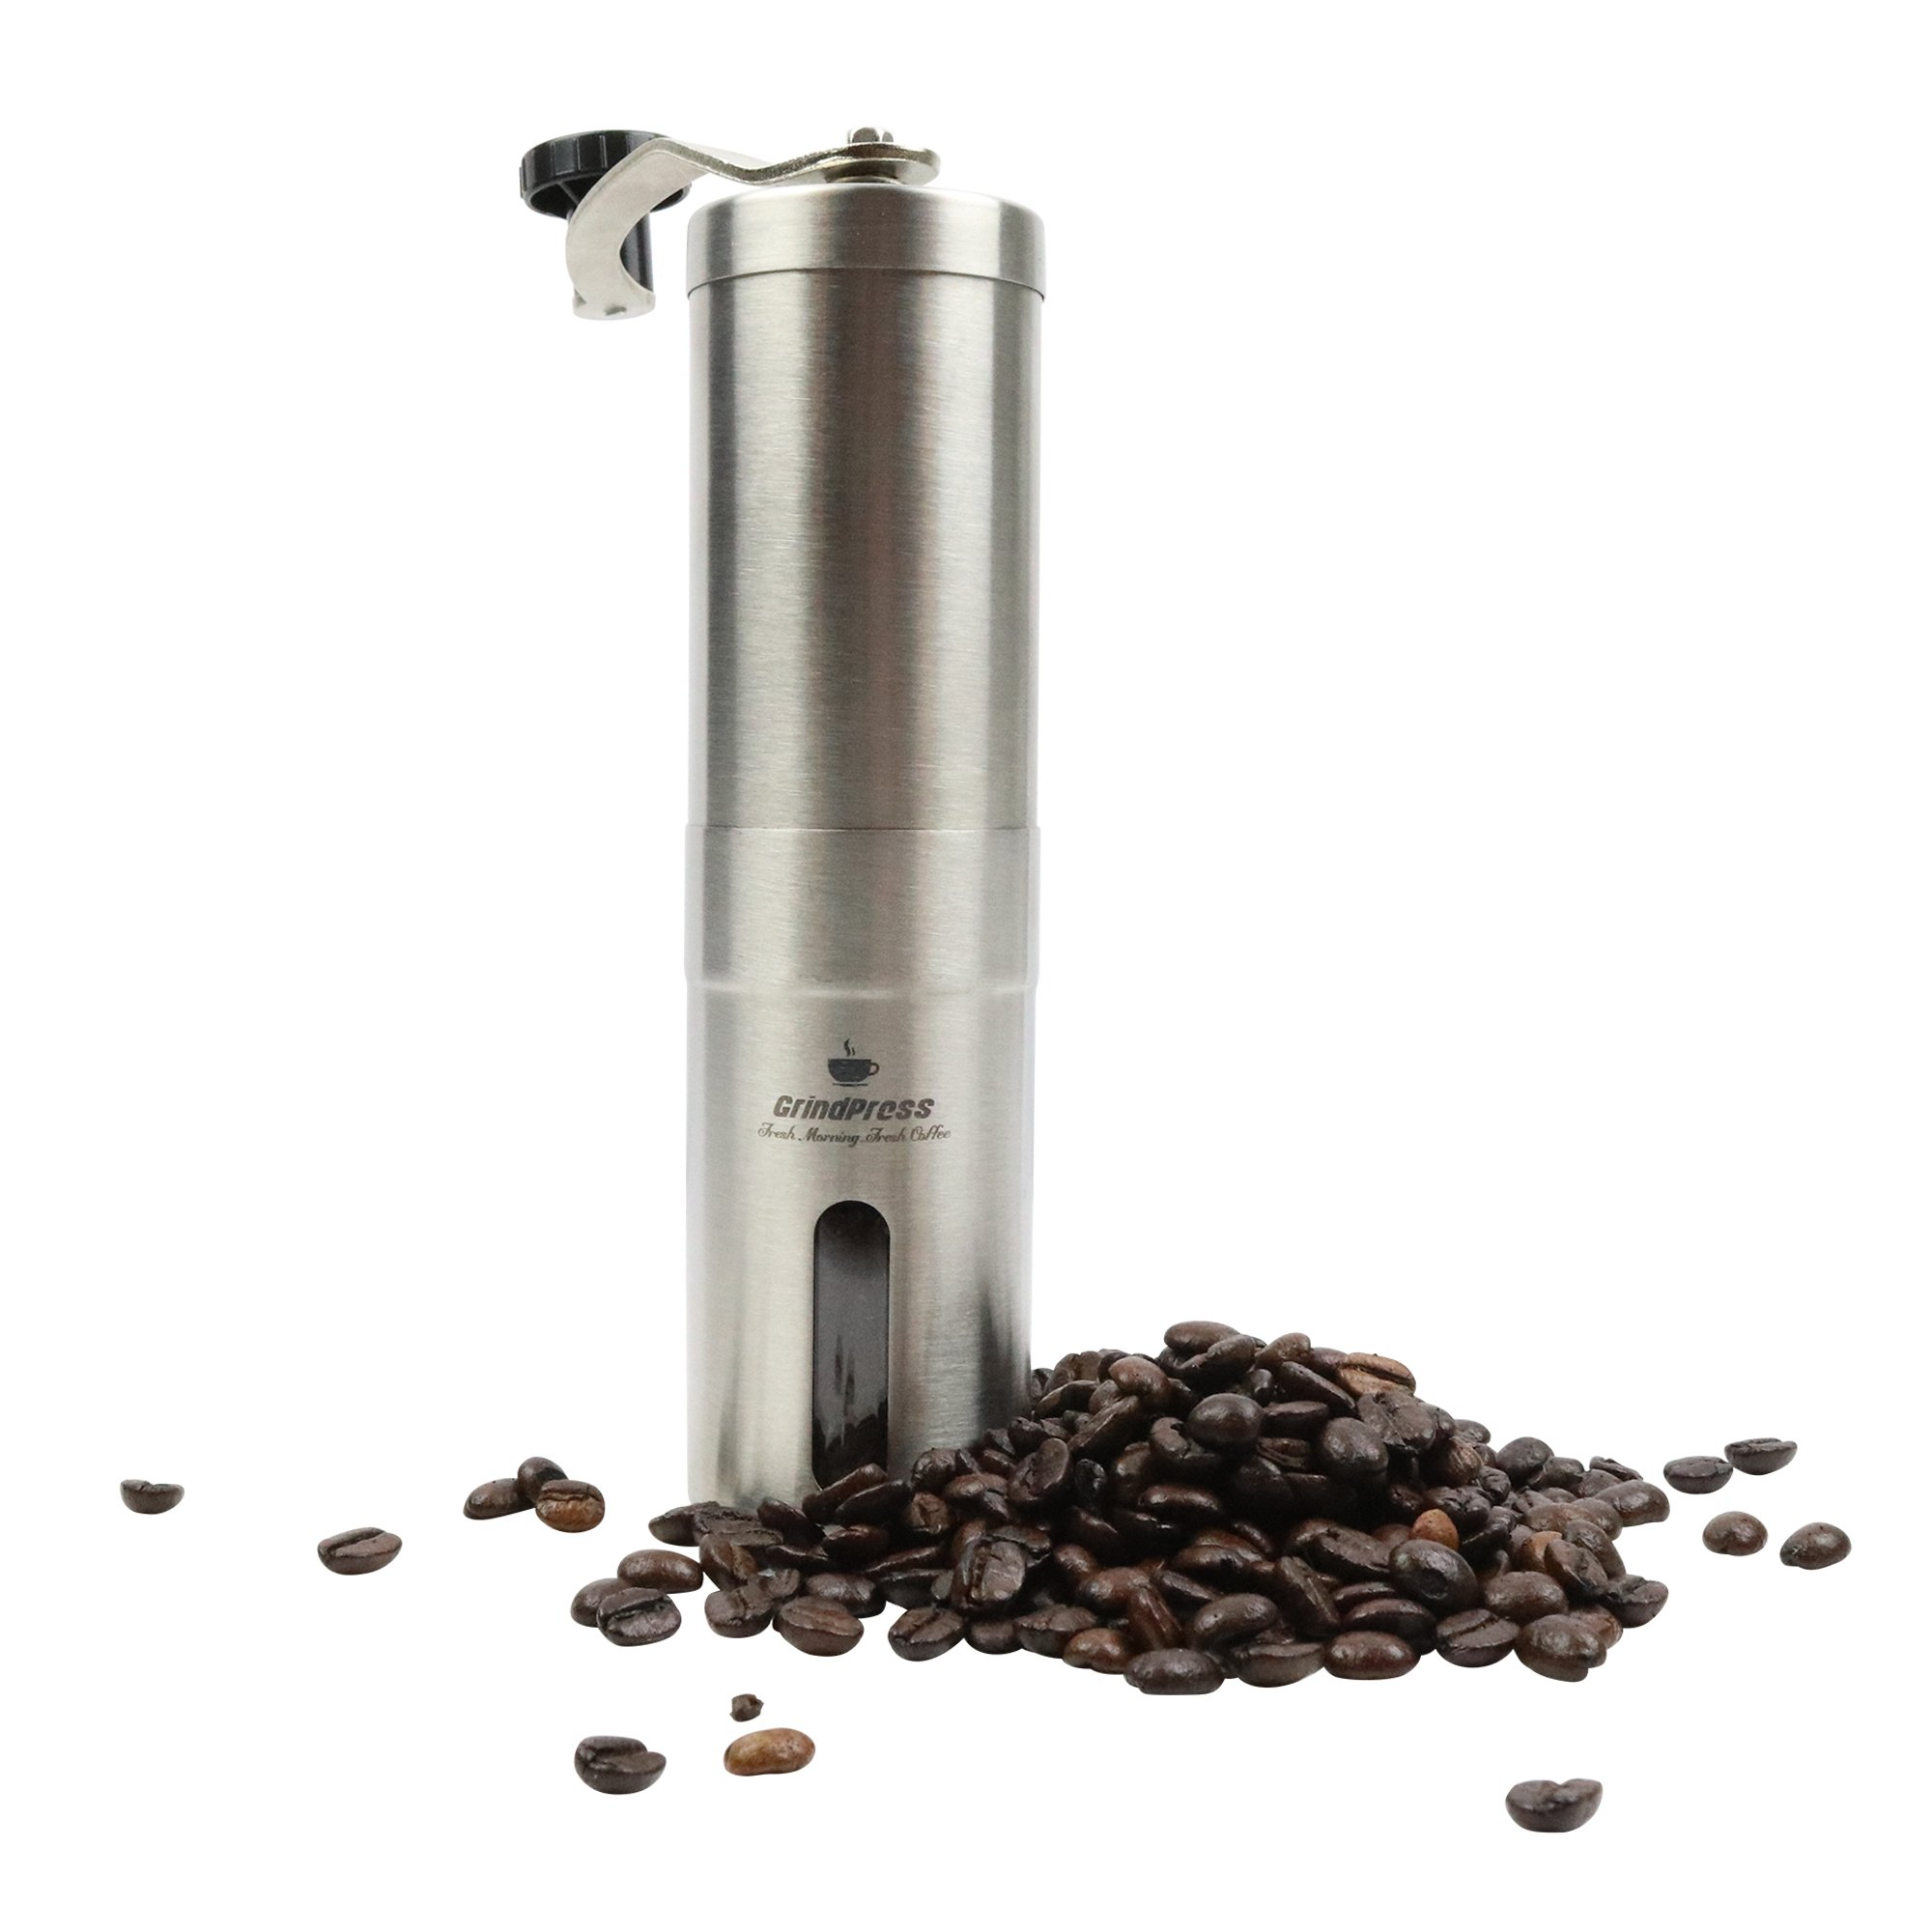 GrindPress Premium Manual Brushed Stainless Steel Coffee Grinder, Conical Burr Mill